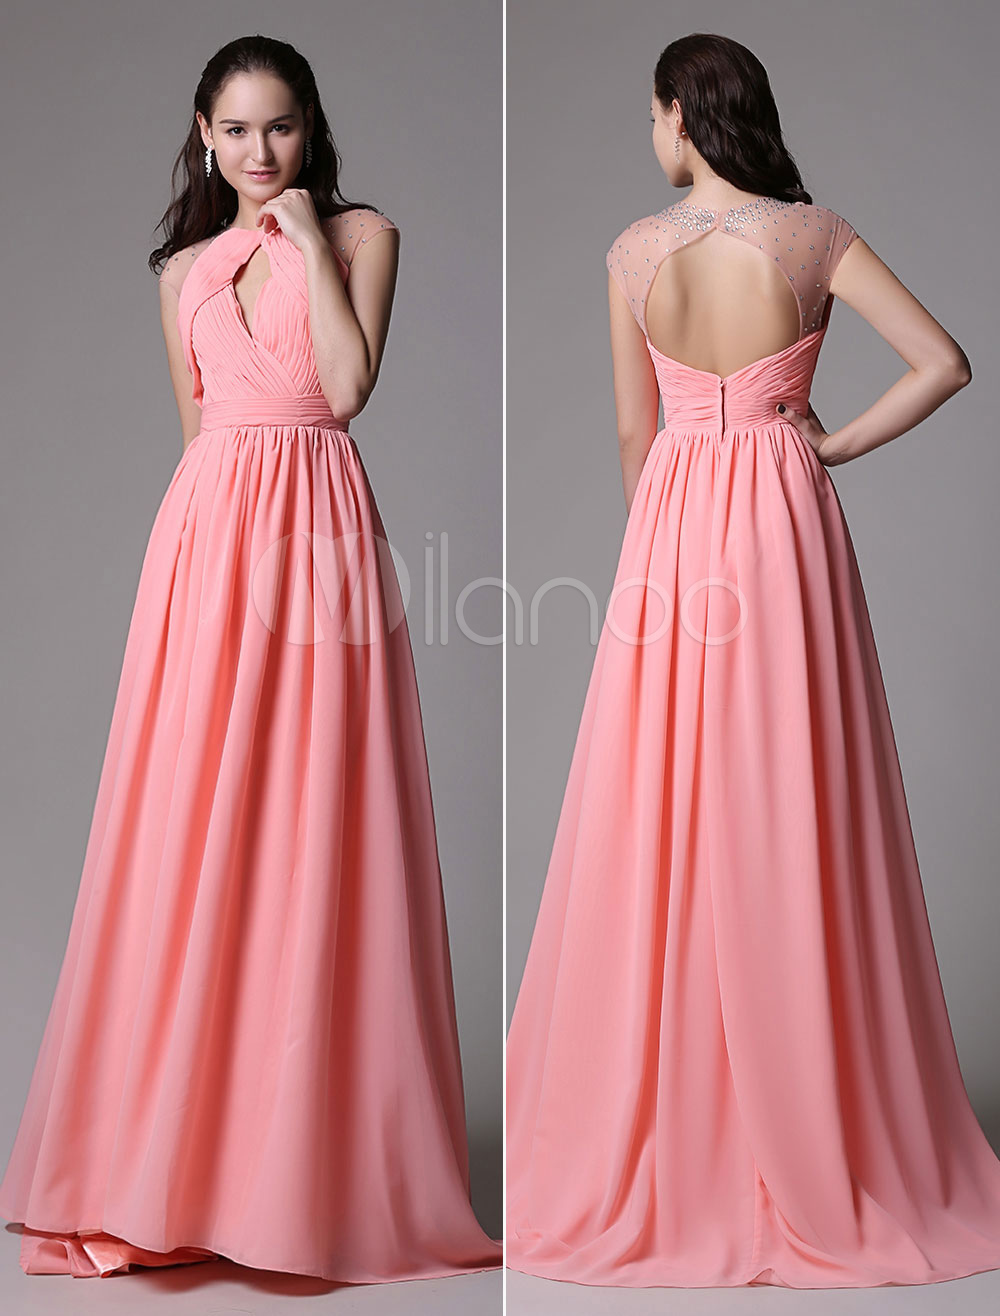 Carol Red Illusion Beading Chiffon Prom Dress with Ruched Bodice Keyhole Style at Front and Back